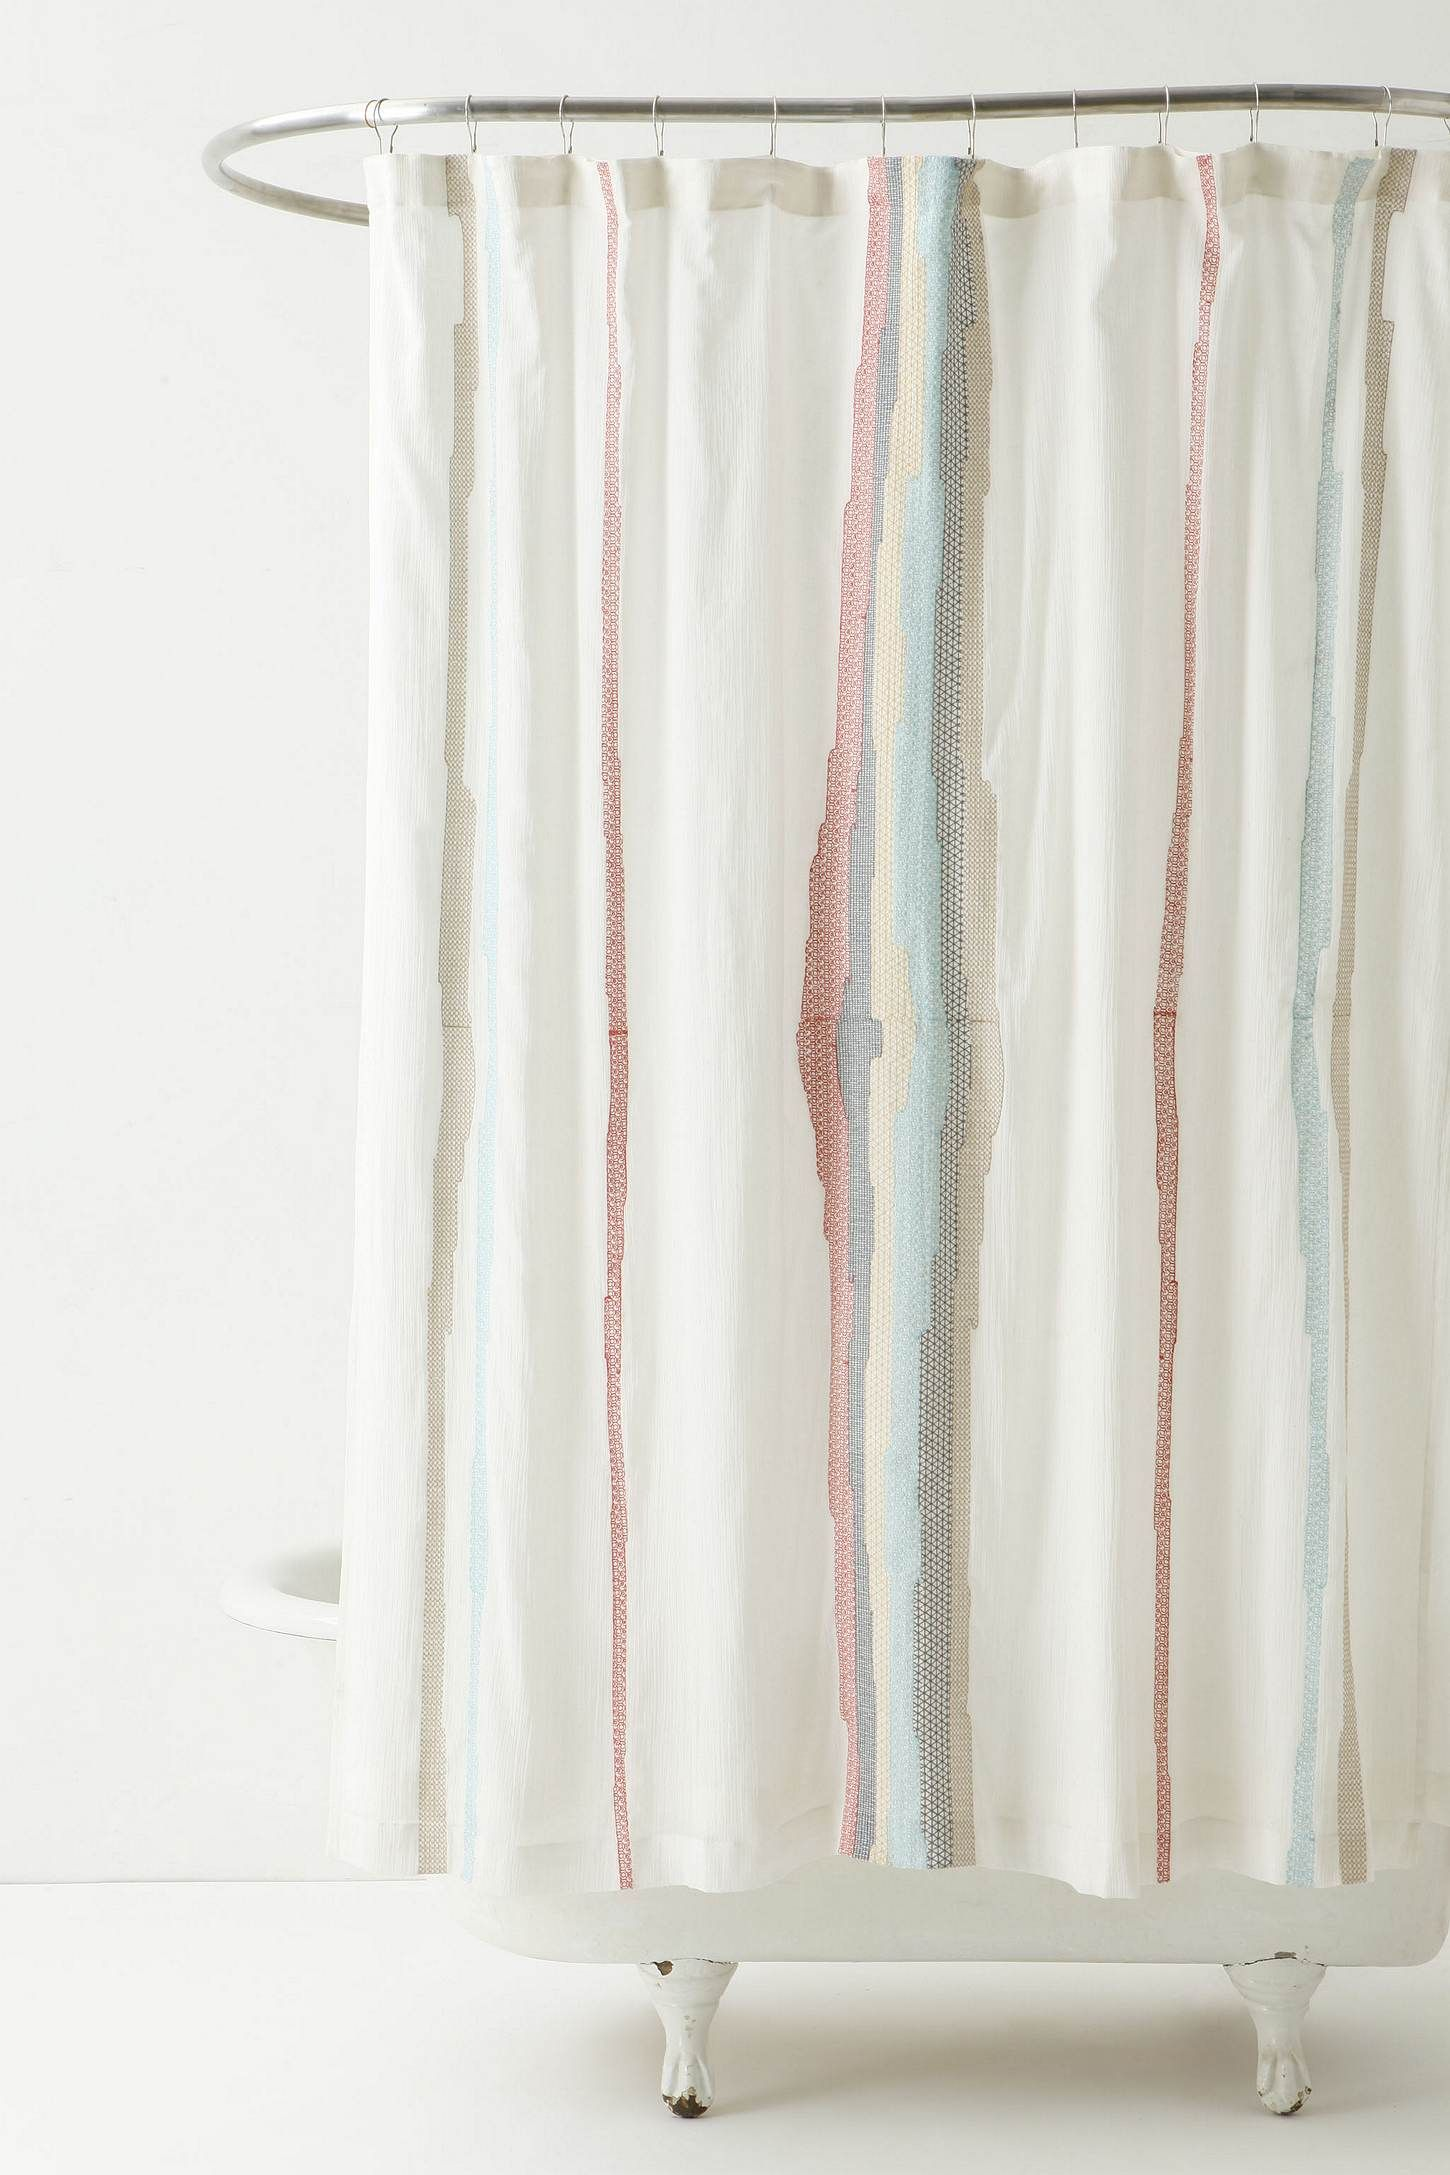 anthropologie sofa ebay queen pull out march 2012 decor pinterest curtains